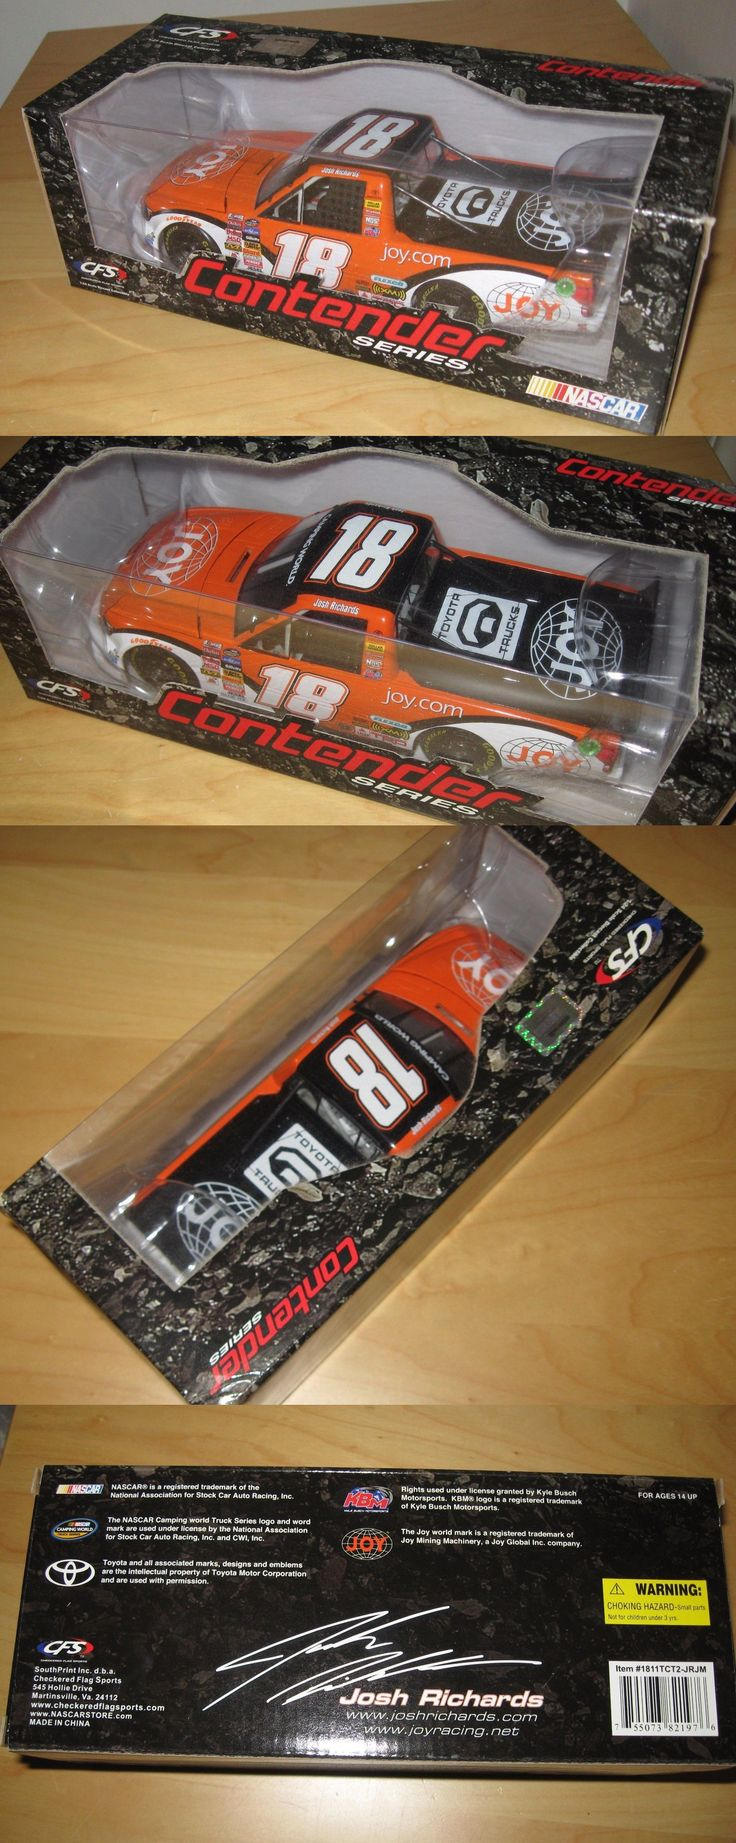 Sport and Touring Cars 180272: Josh Richards 2011 1 24 Toyota Tundra Joy Mining Truck Nascar Diecast Cfs Htf -> BUY IT NOW ONLY: $49.95 on eBay!